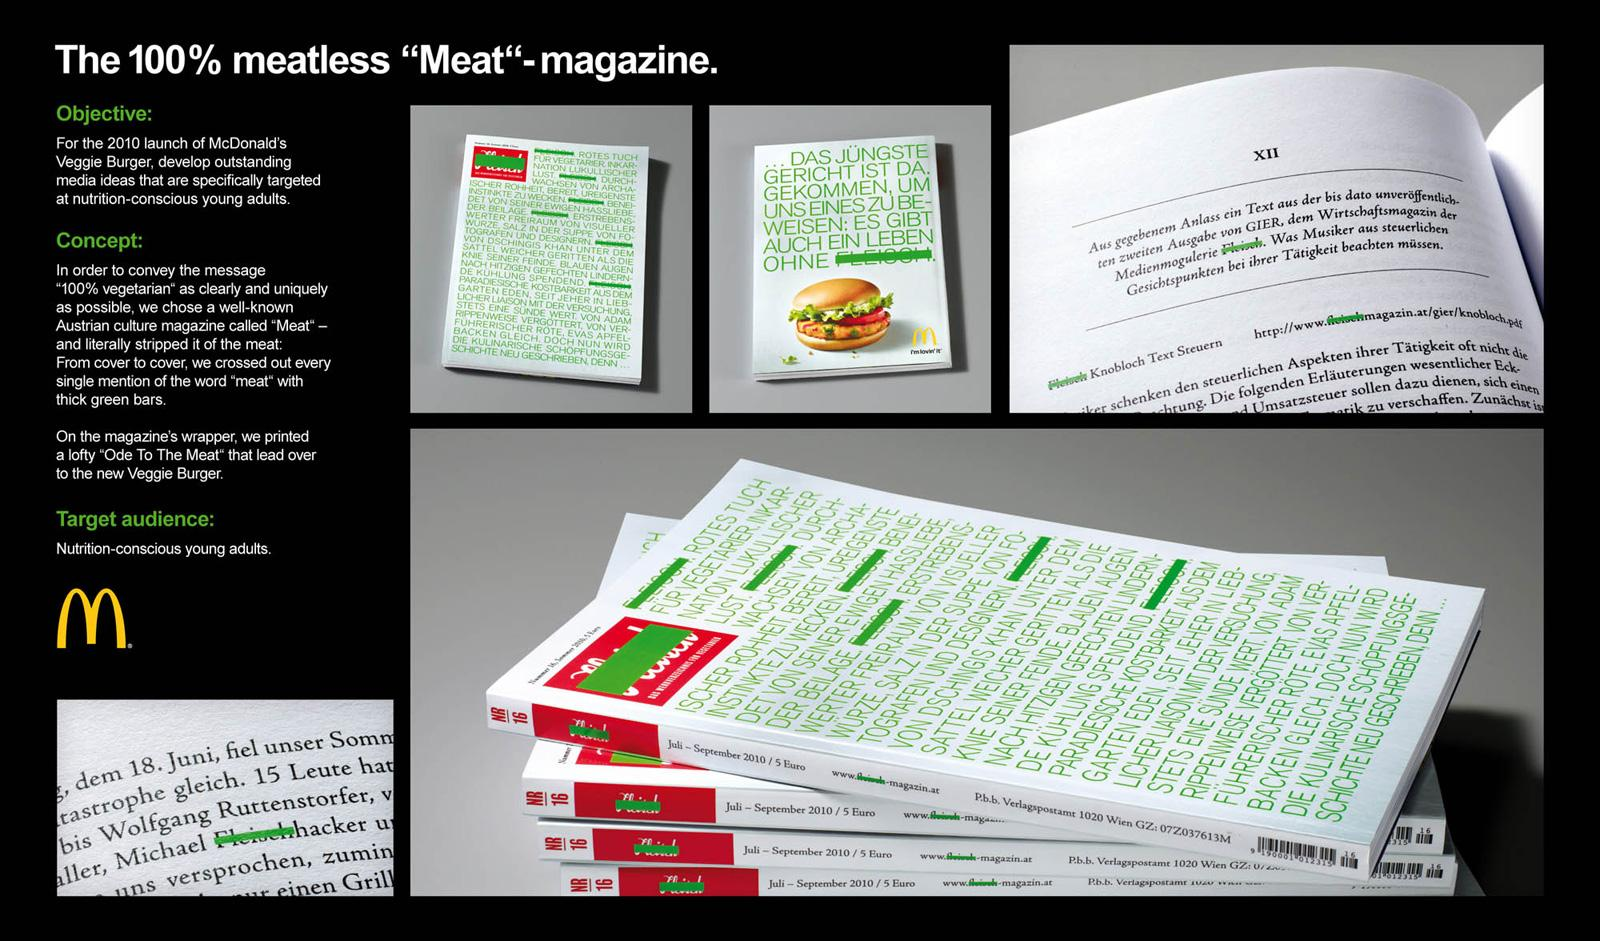 """McDonald's Direct Ad -  The 100% meatless """"Meat""""-magazine"""